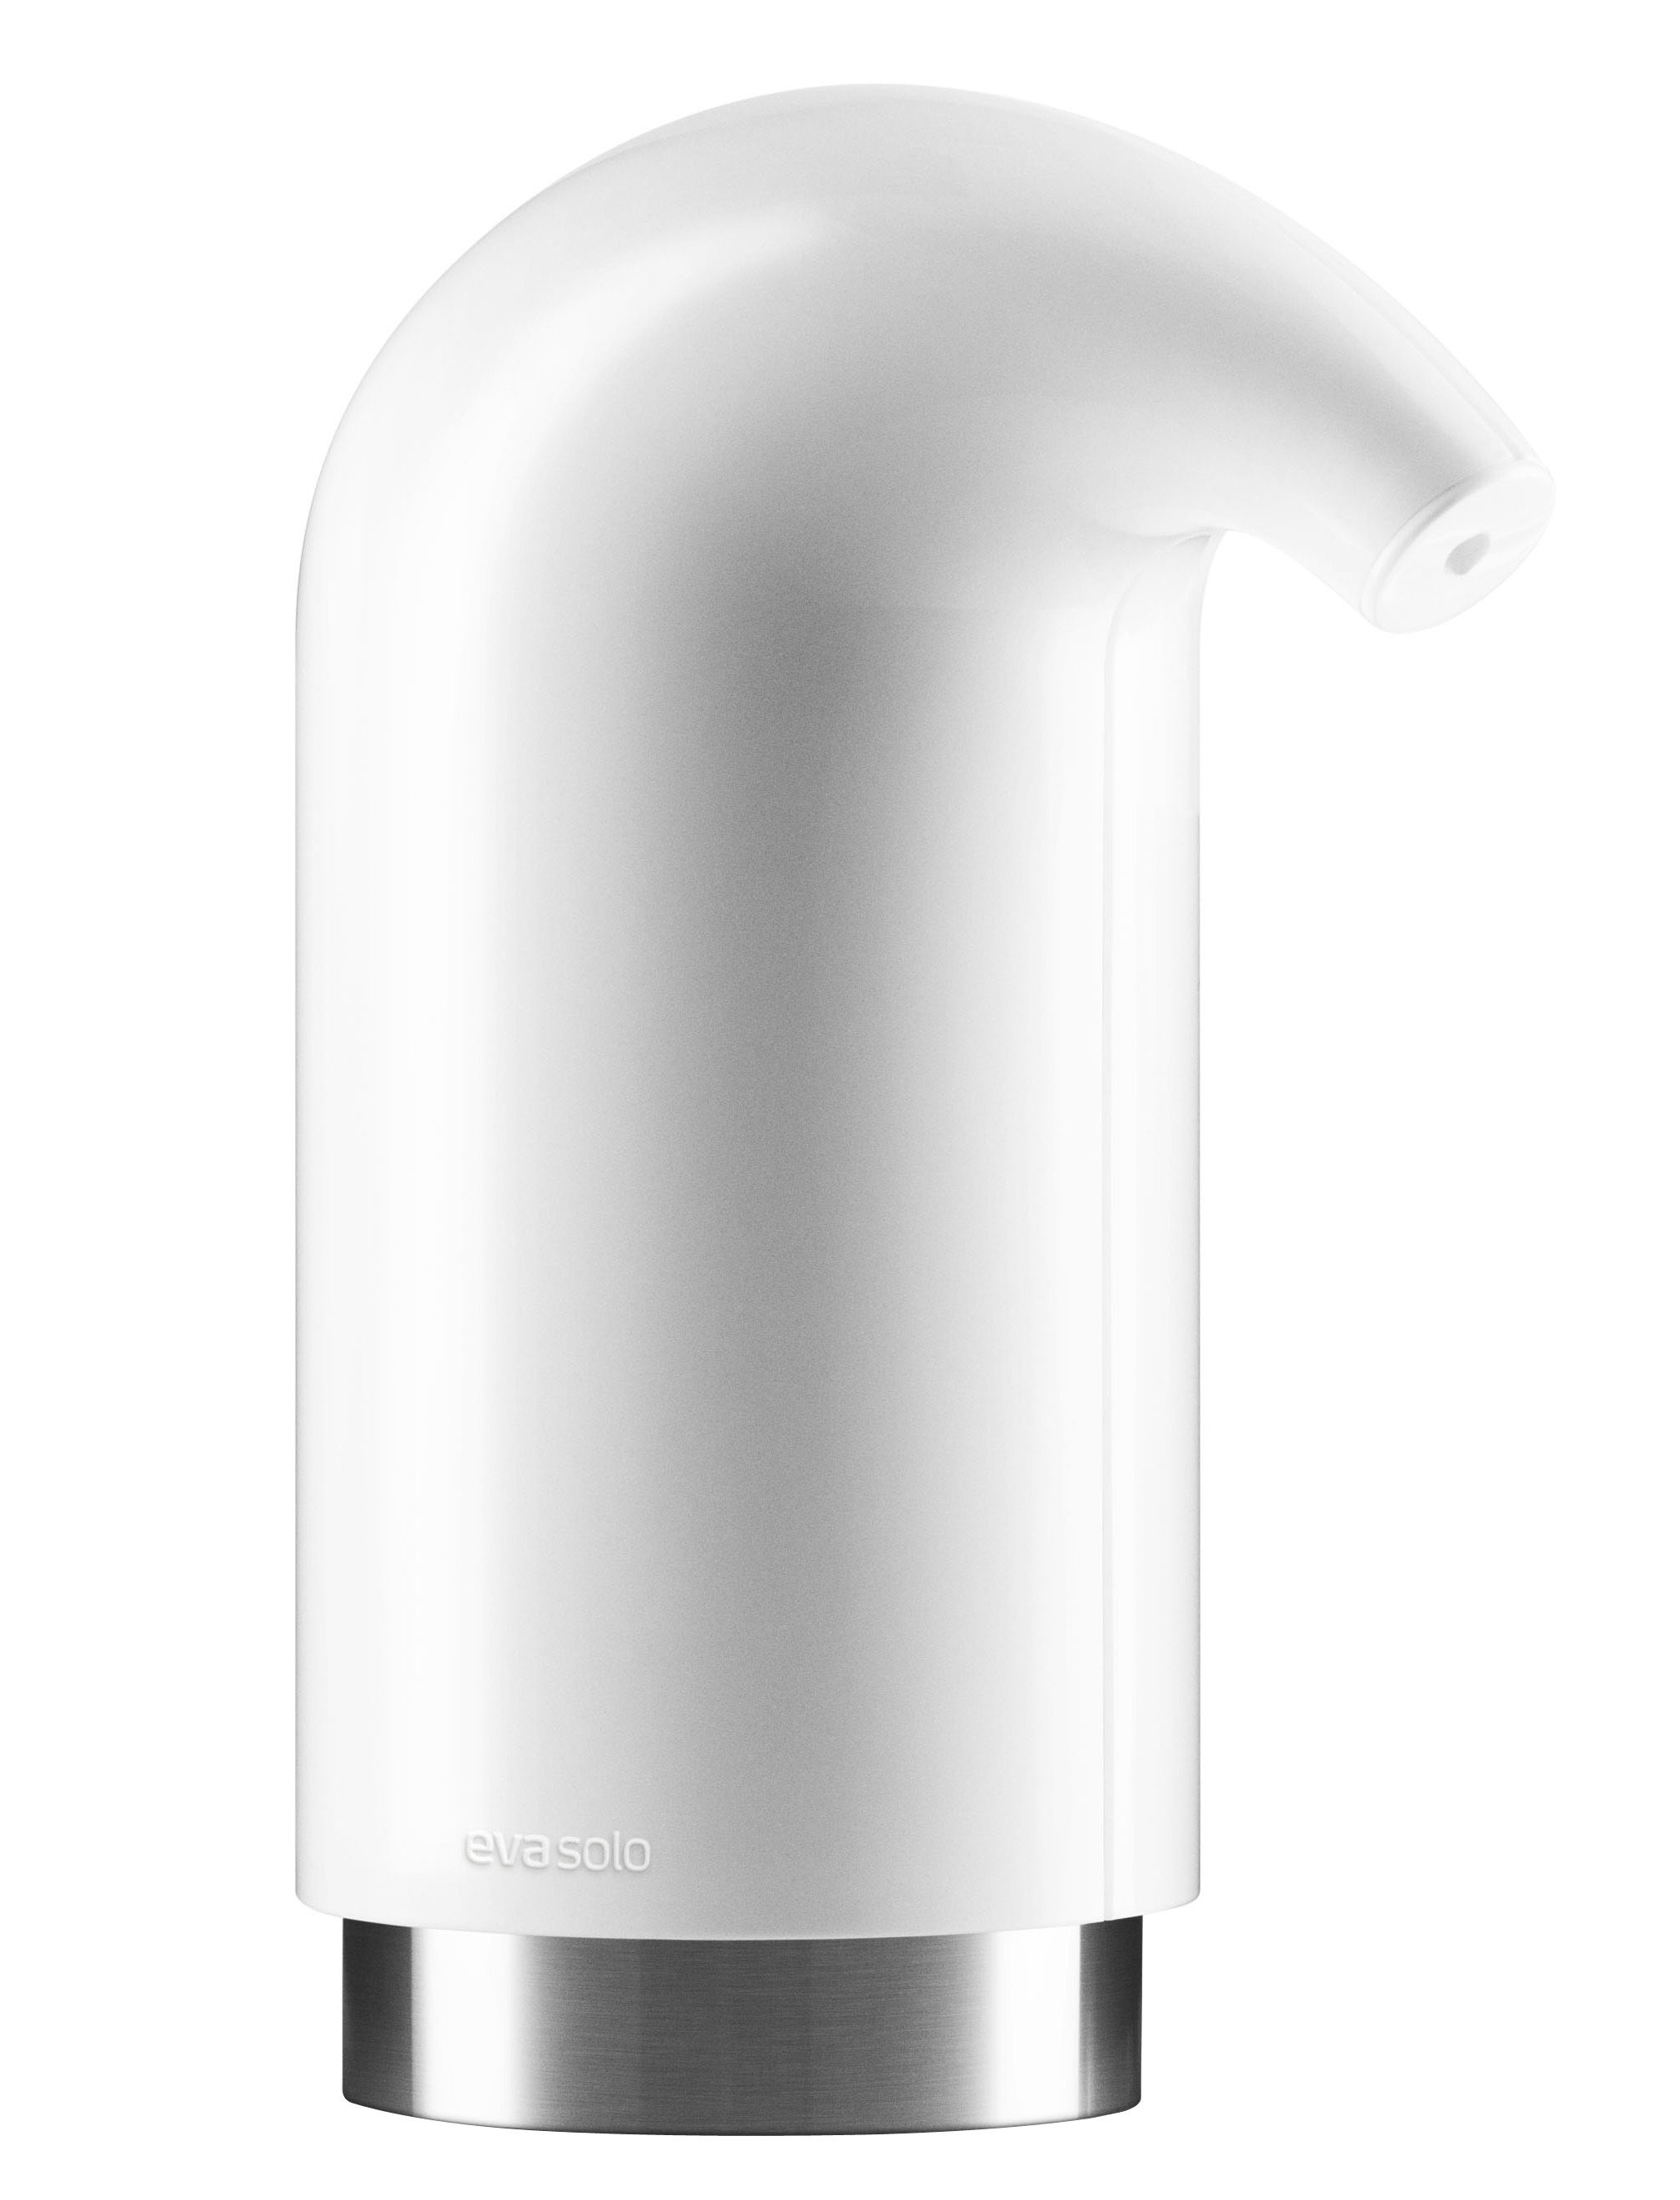 Decoration - For bathroom - Lotion dispenser by Eva Solo - White - ABS, Rubber, SAN plastic, Stainless steel